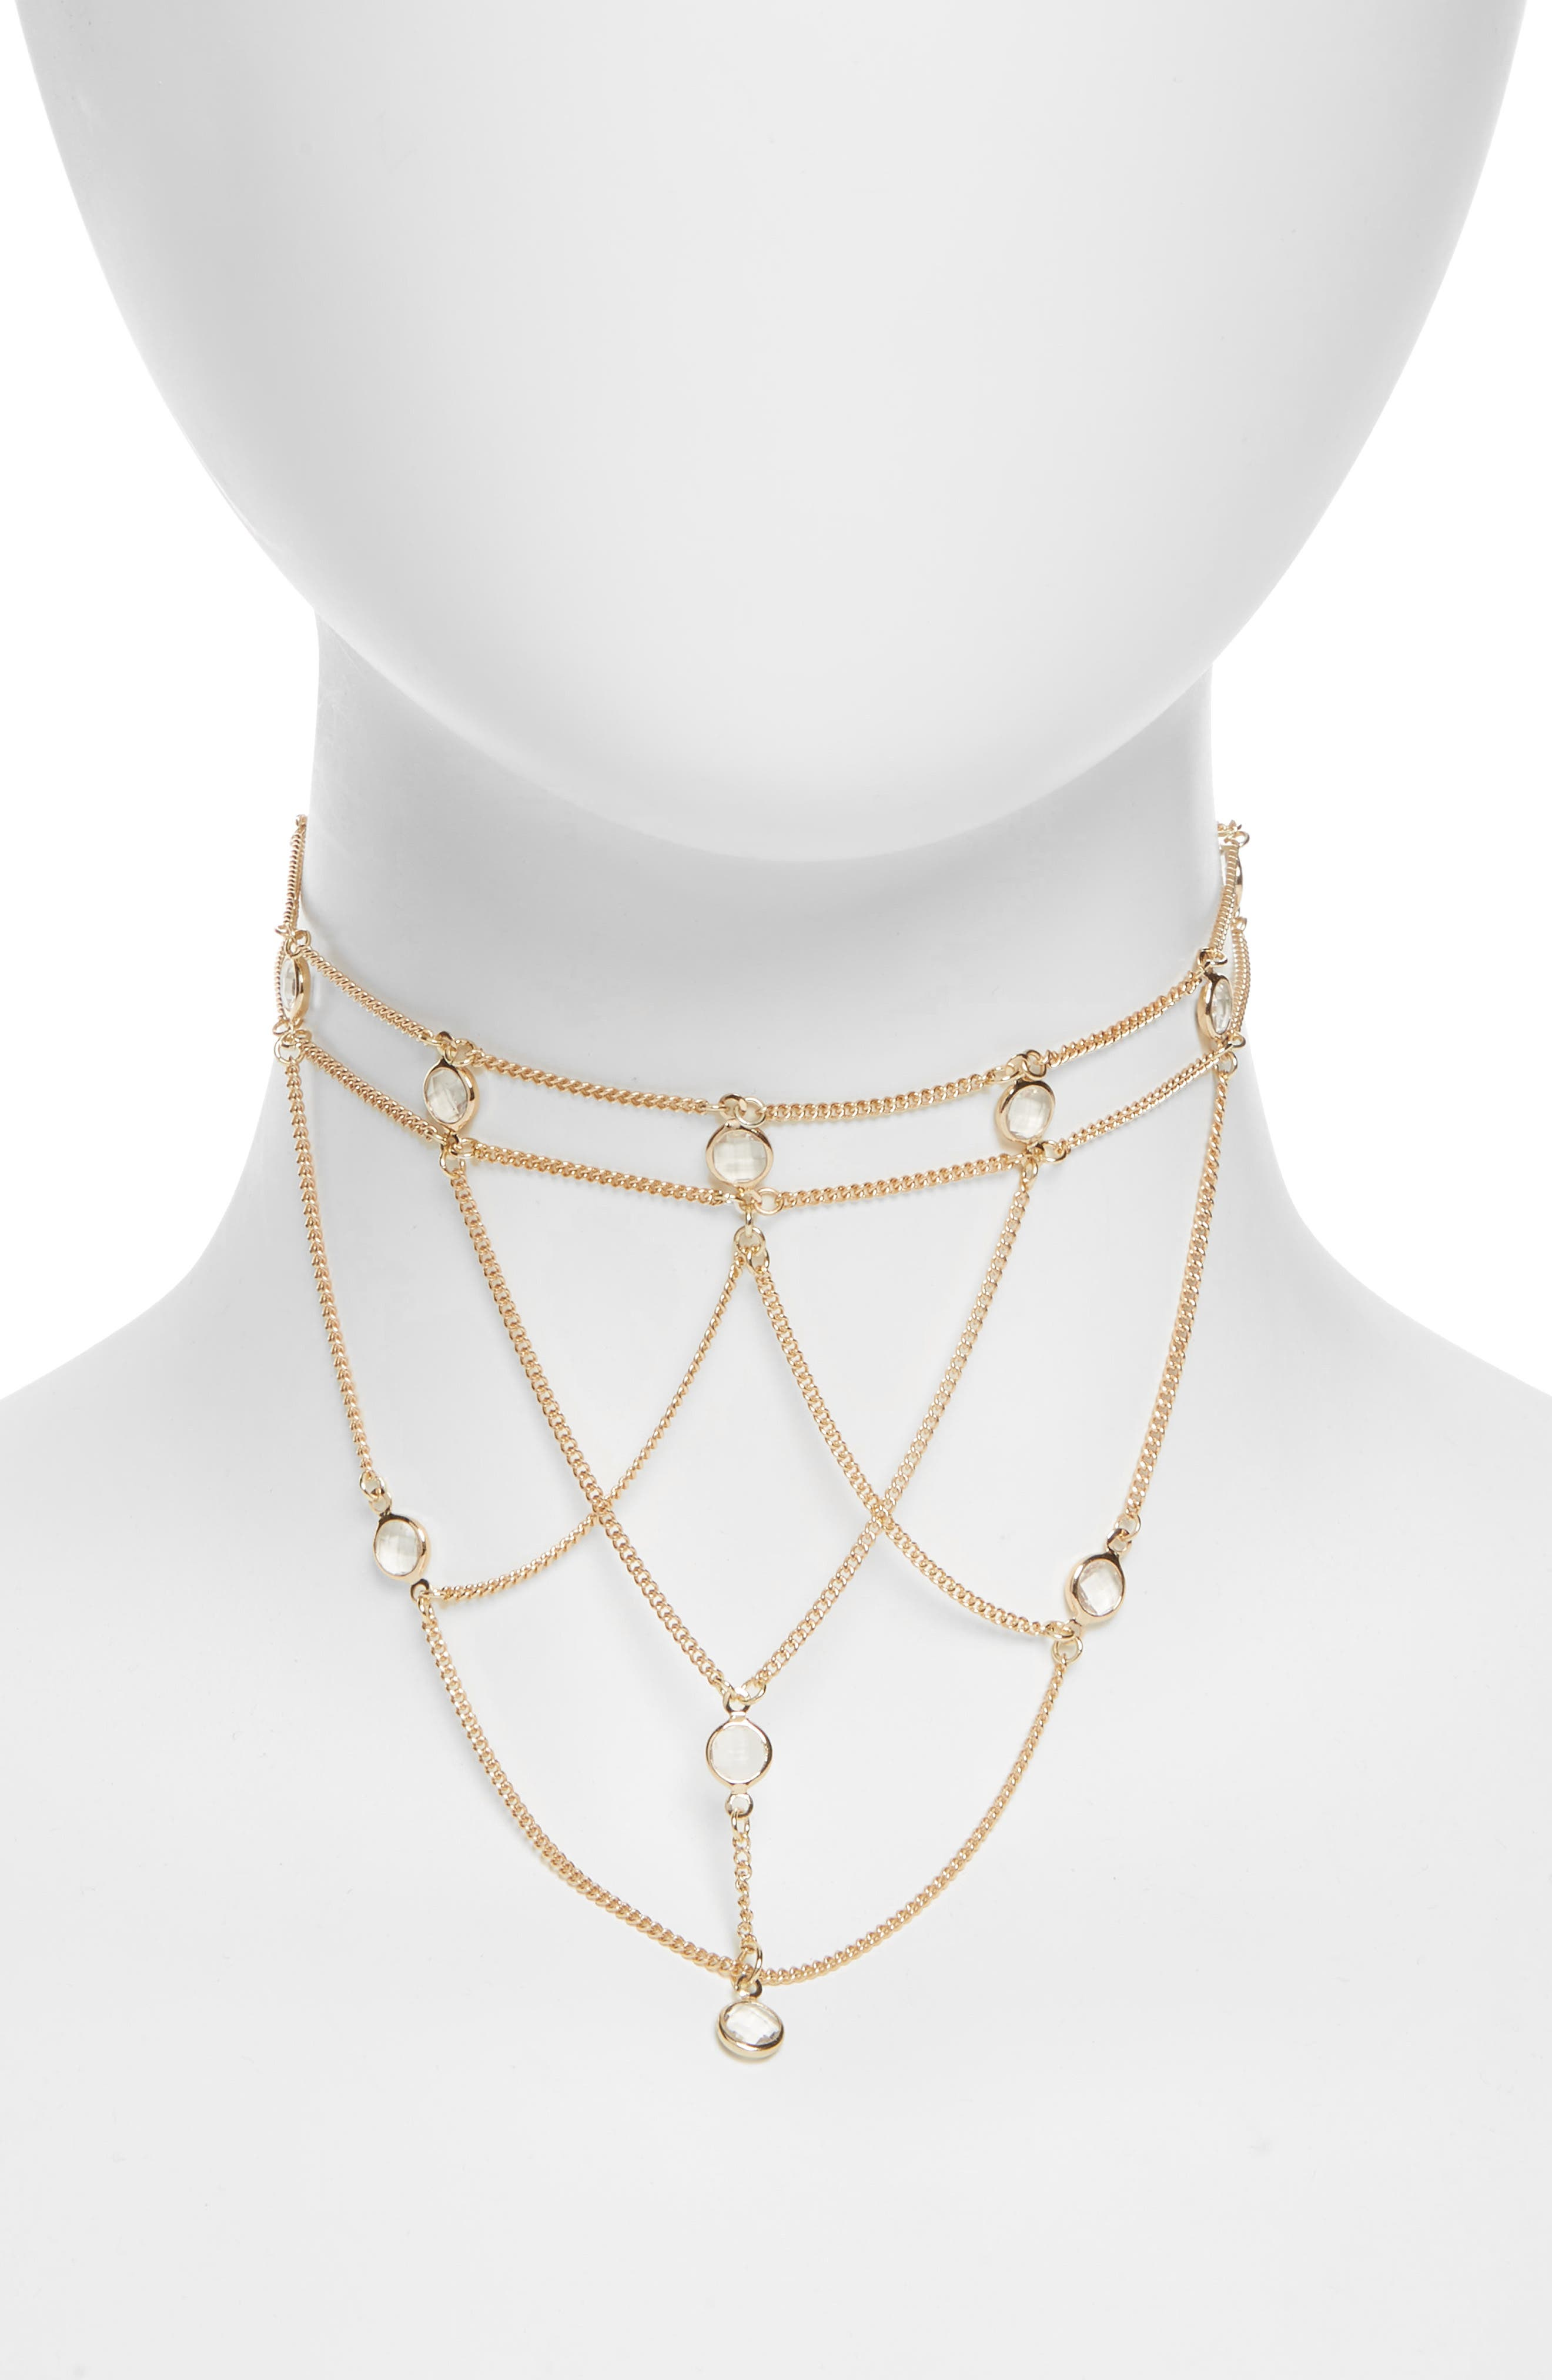 Cage Choker Necklace,                         Main,                         color, 710